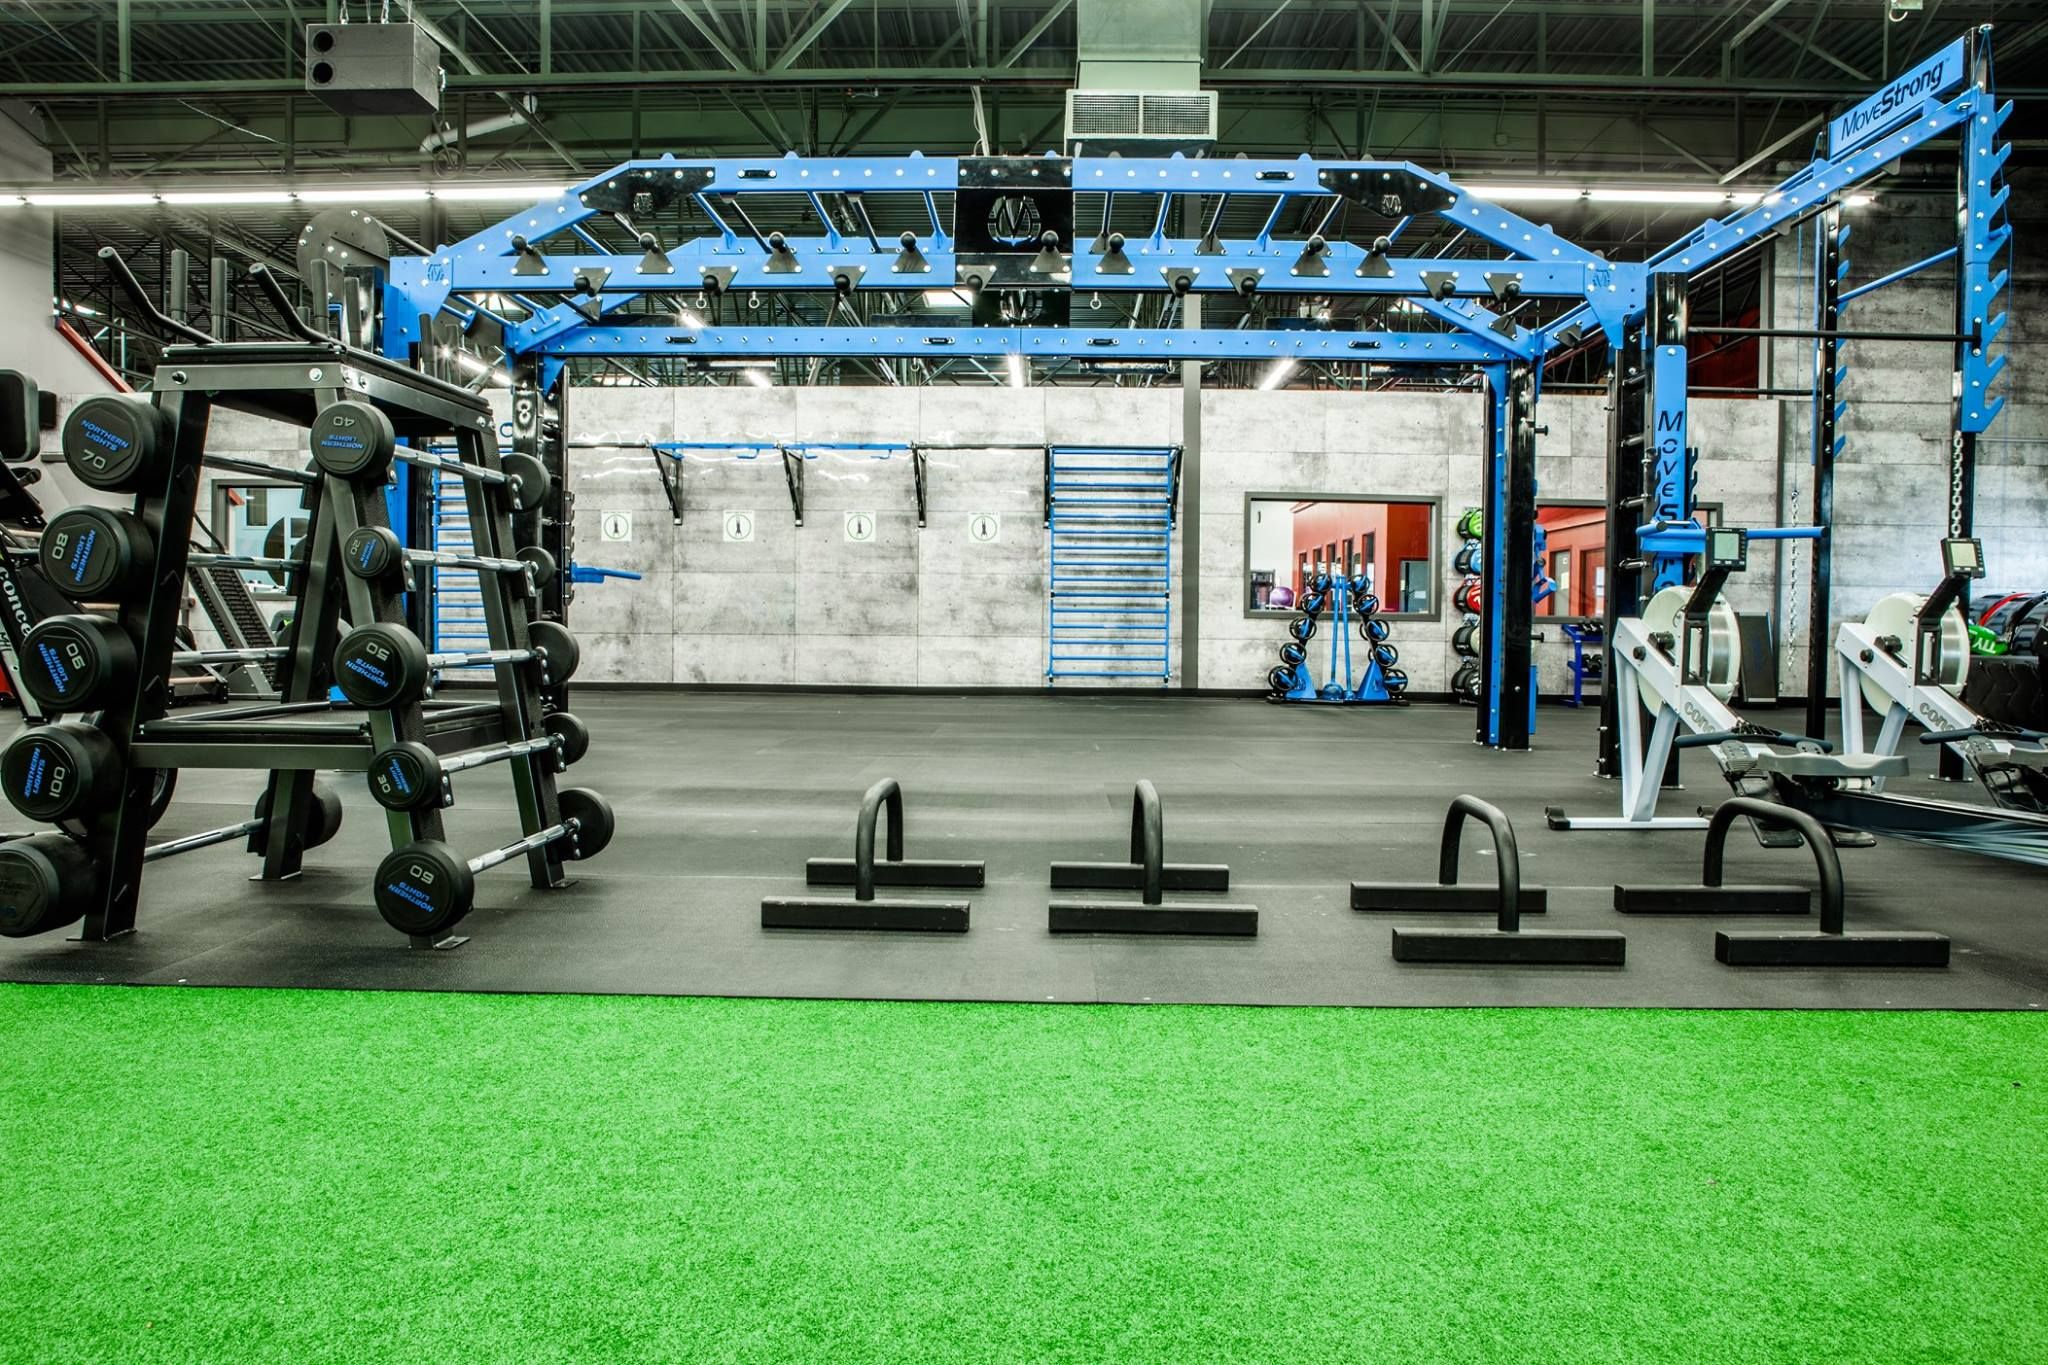 Movestrong Nova Xl Functional Training Station With Arch Monkey Bar Bridge Functional Fitness And Ninj Functional Training No Equipment Workout Back Exercises